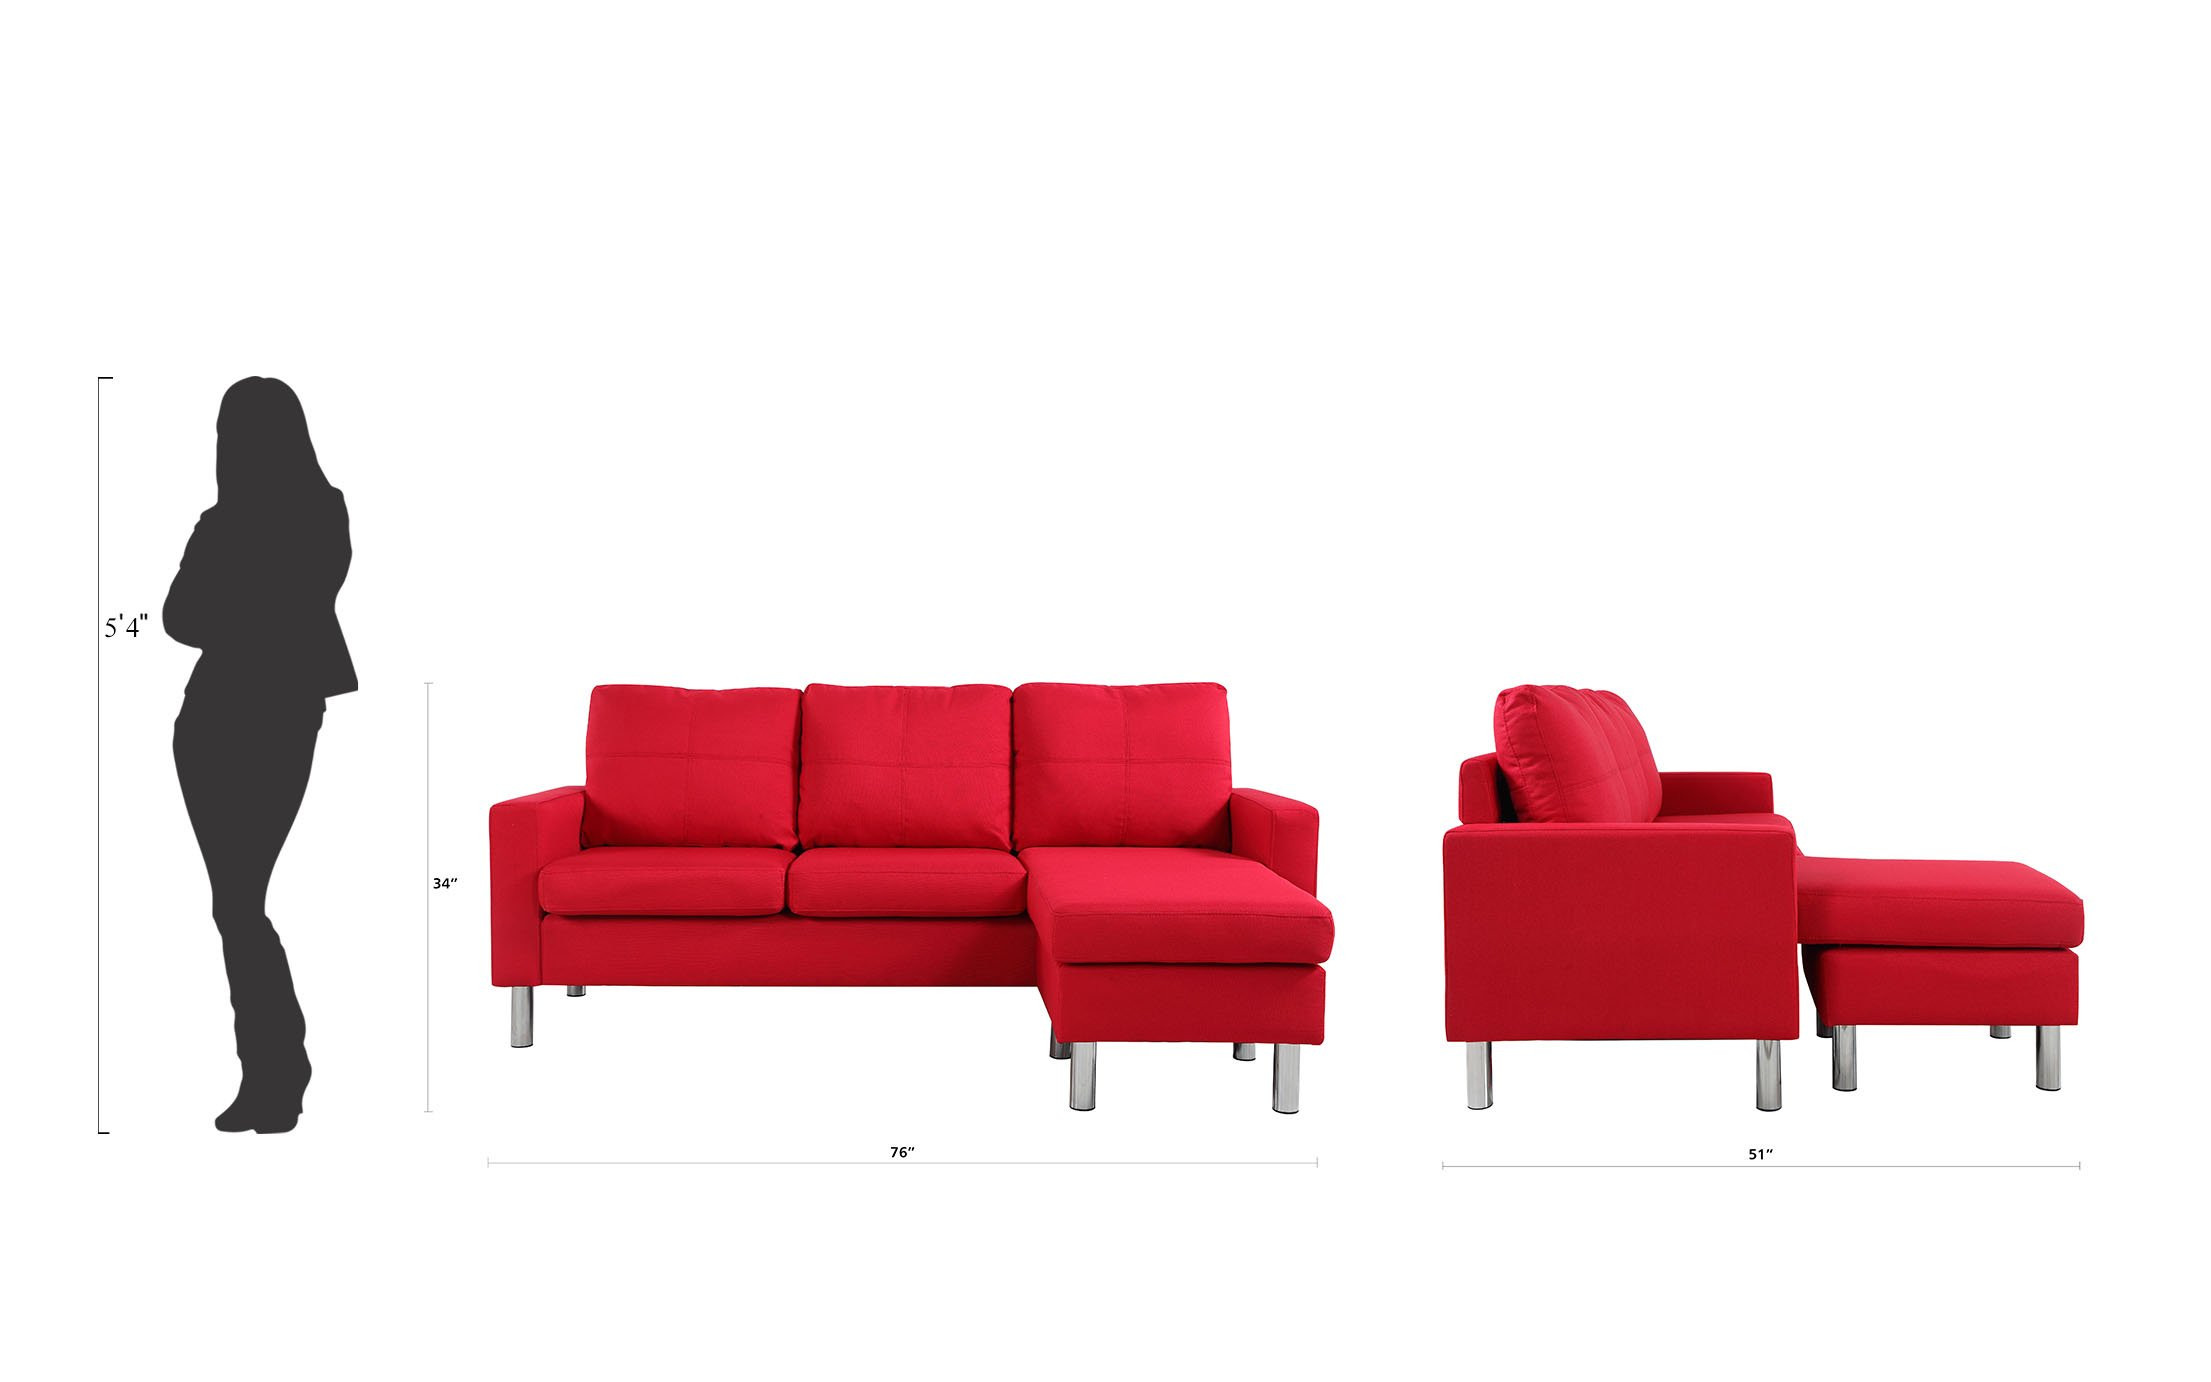 Modern-Living-Reversible-Linen-Fabric-Sectional-Sofa-Small-Space-Red thumbnail 6